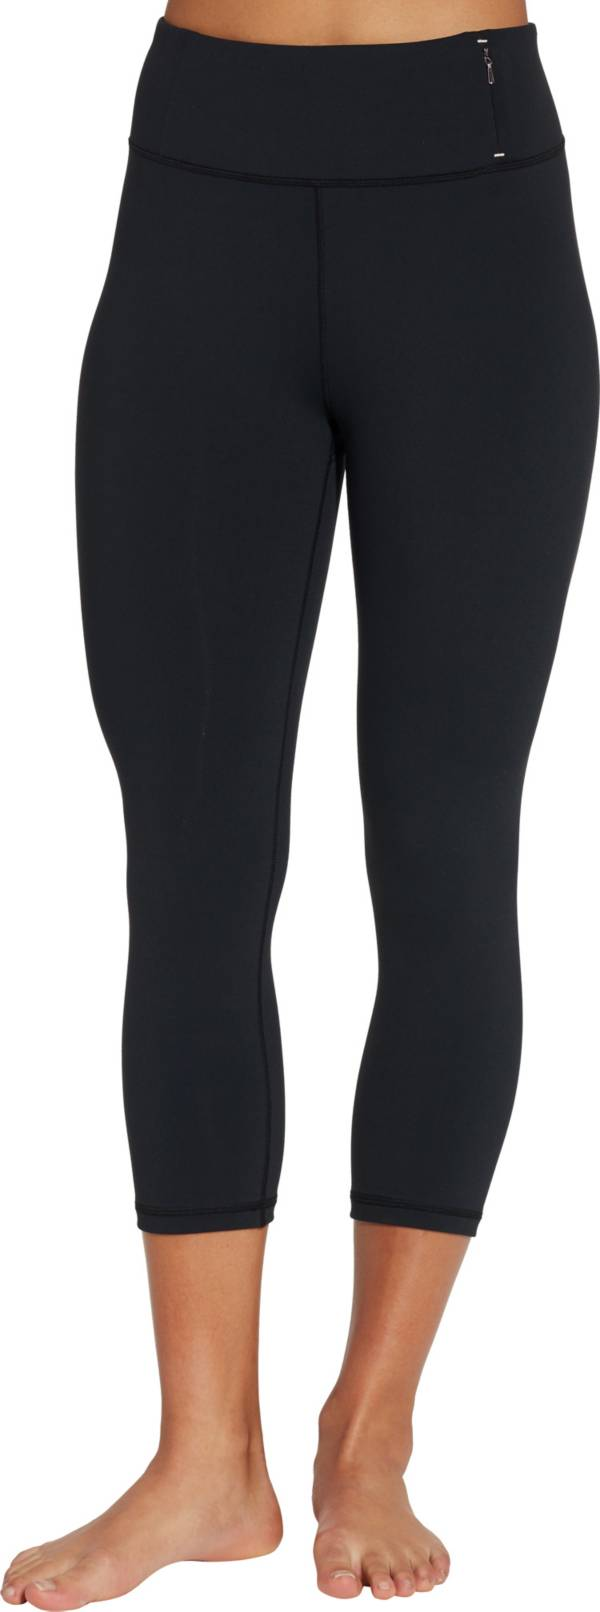 CALIA by Carrie Underwood Women's Essential High Rise Capris product image